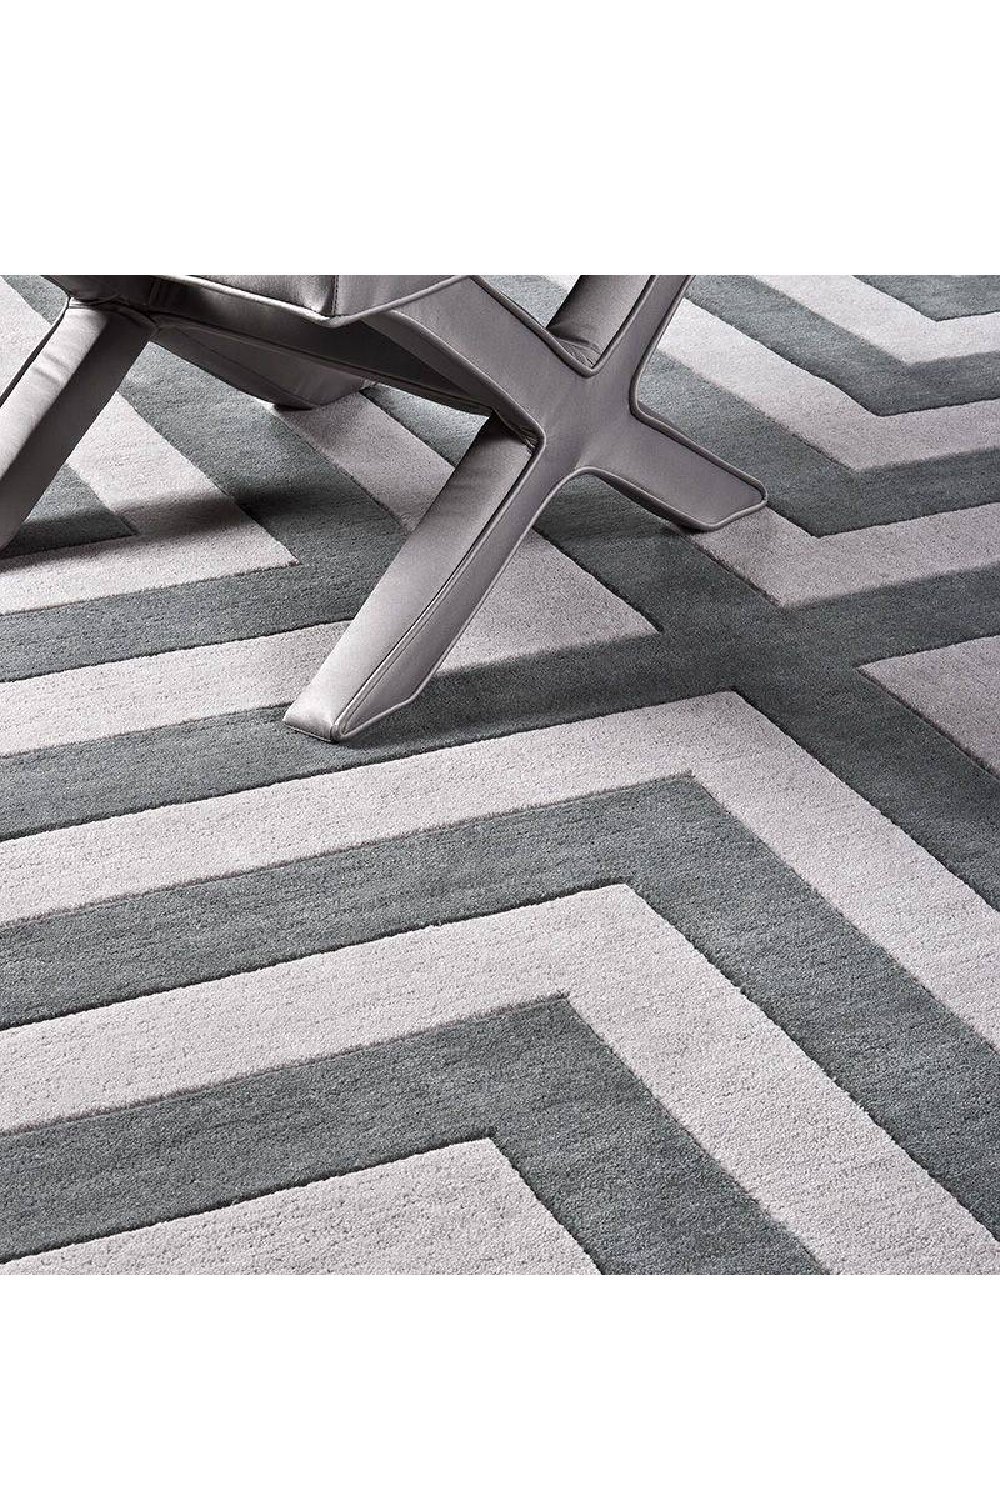 Gray Rug | Eichholtz Thistle (8x10) | OROA Modern & Luxury Furniture